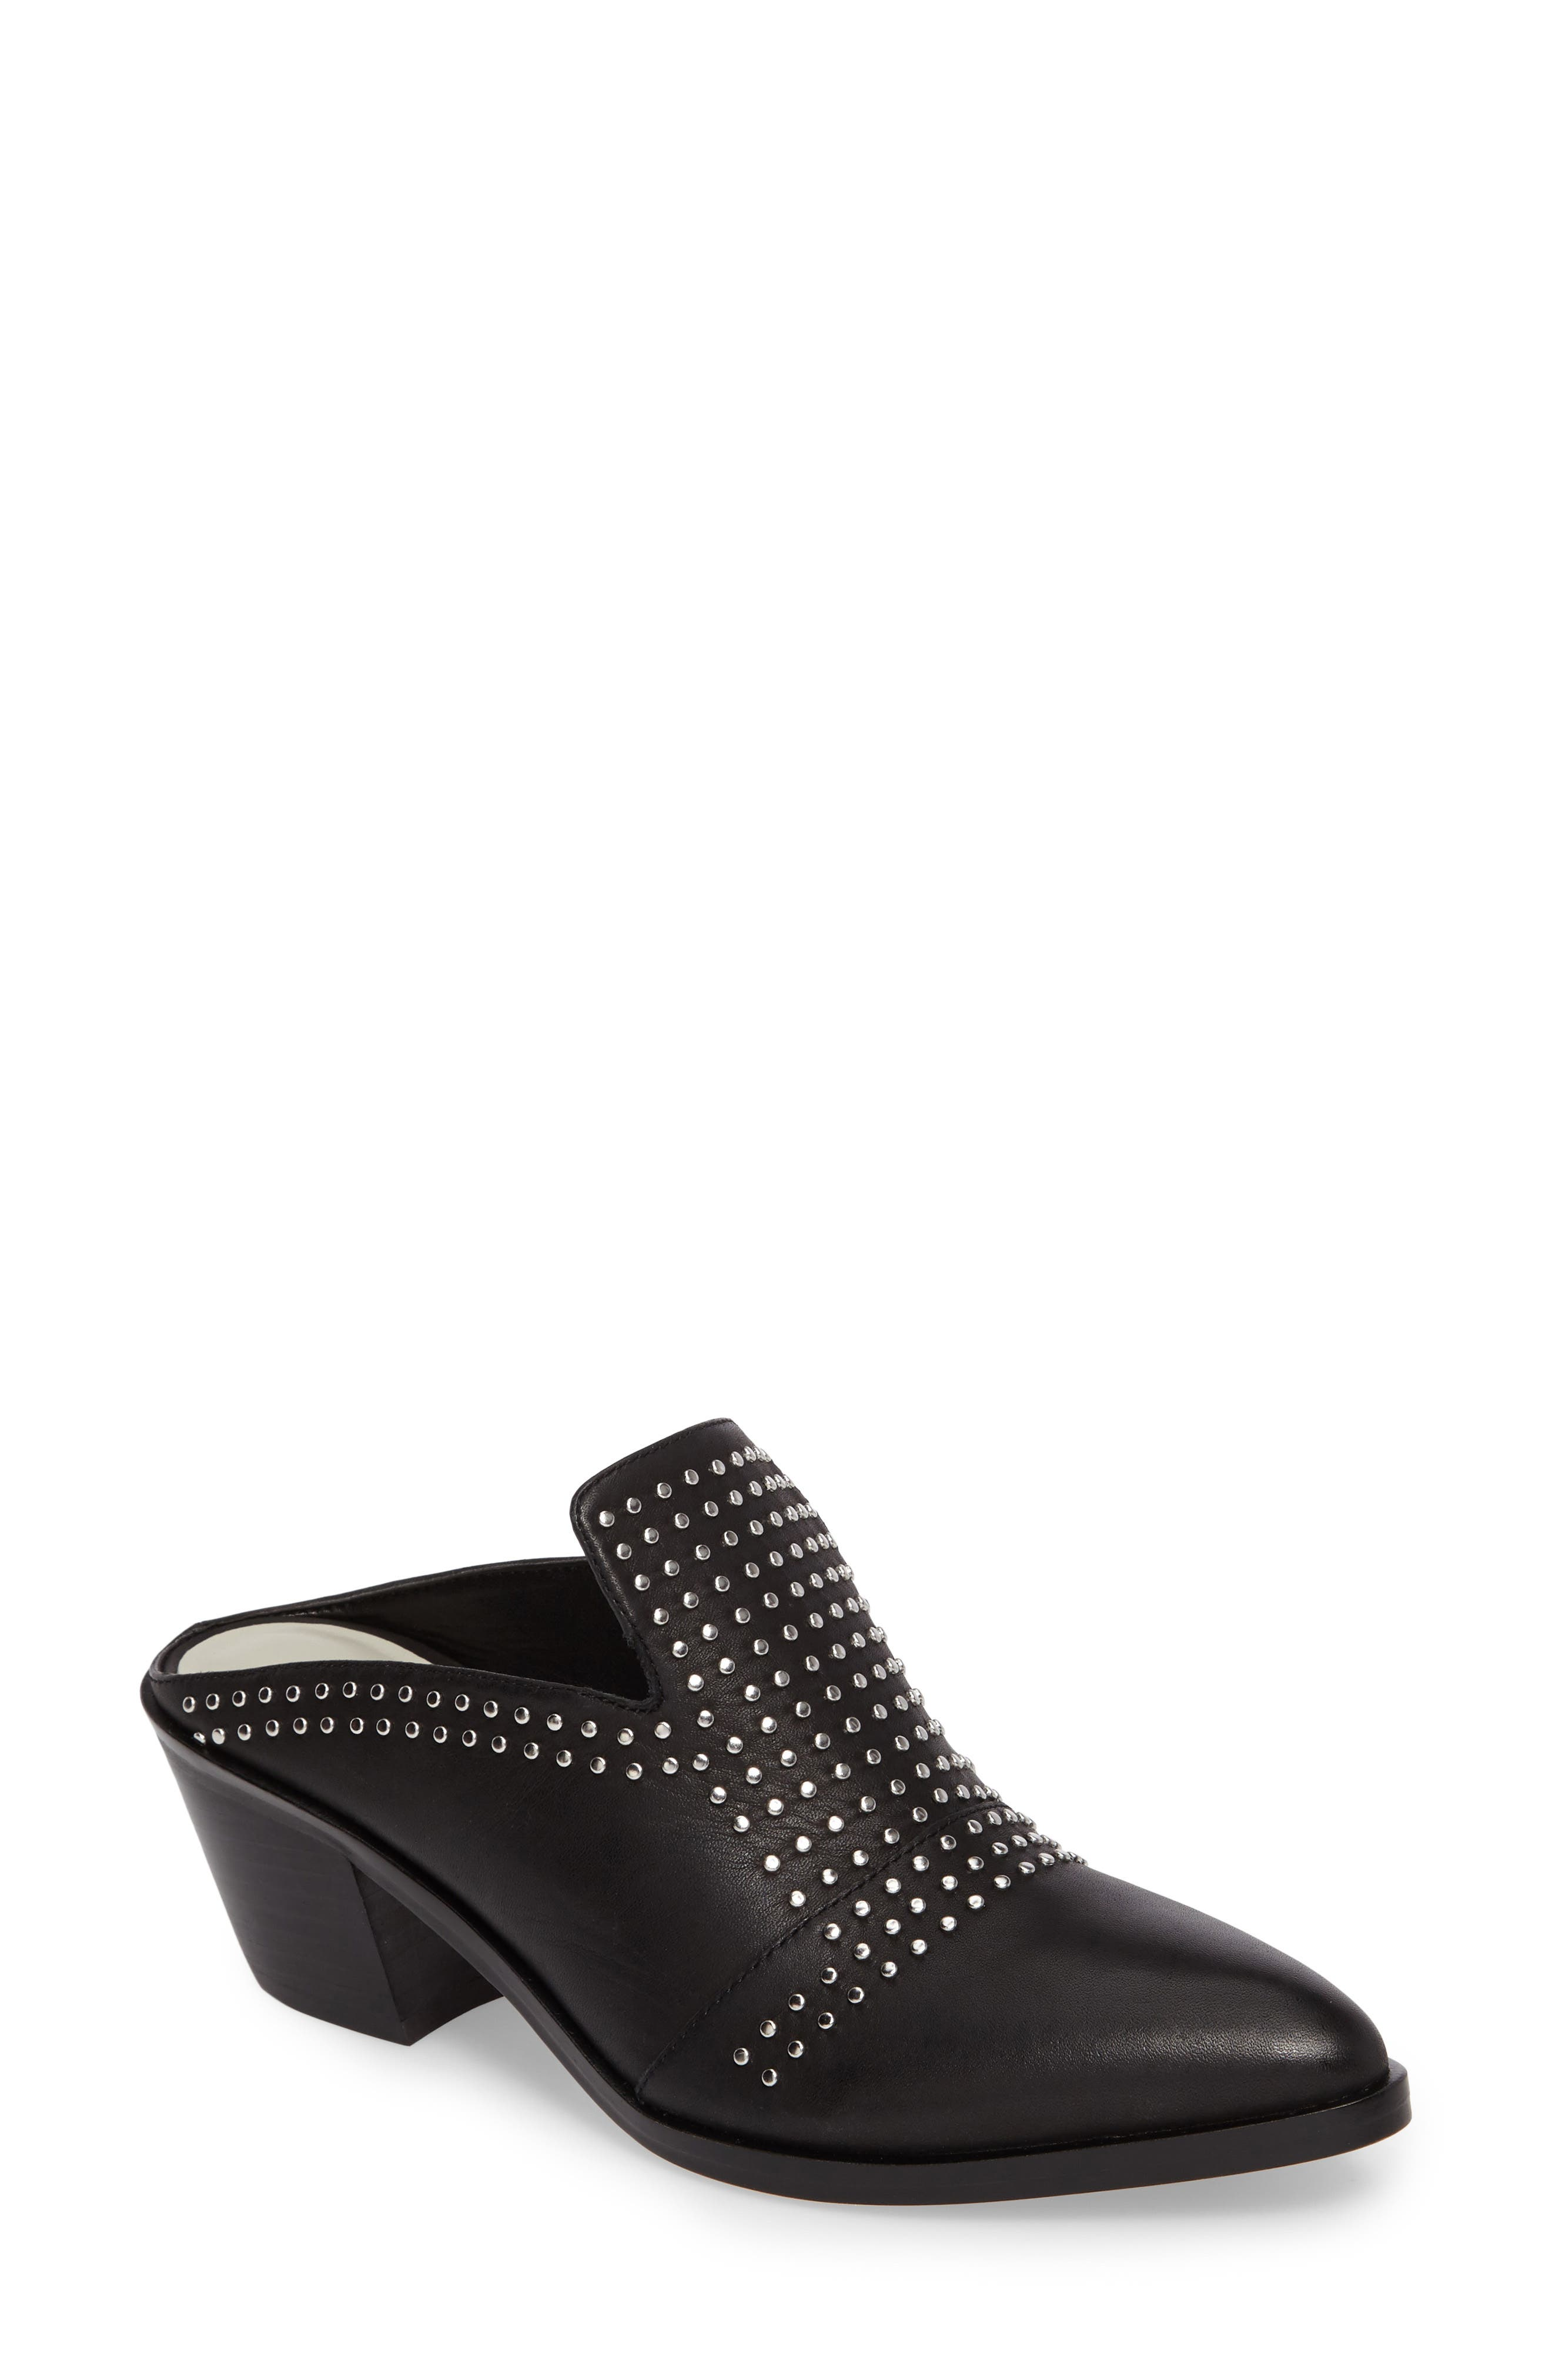 Lon Studded Loafer Mule,                             Main thumbnail 1, color,                             Black Leather